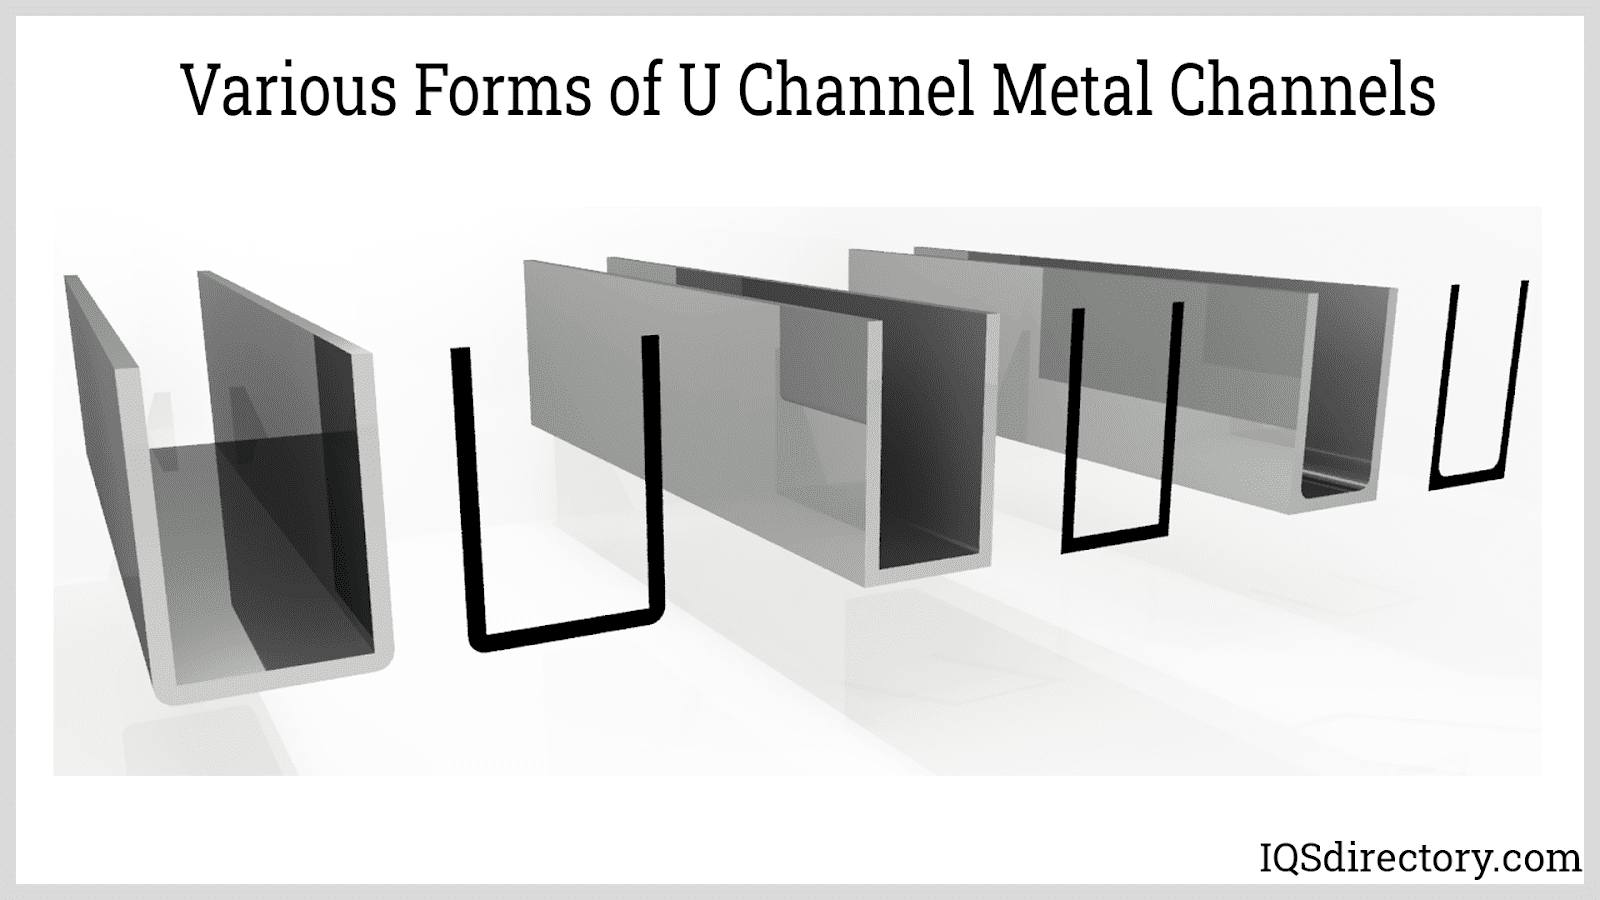 Various Forms of U Channel Metal Channels